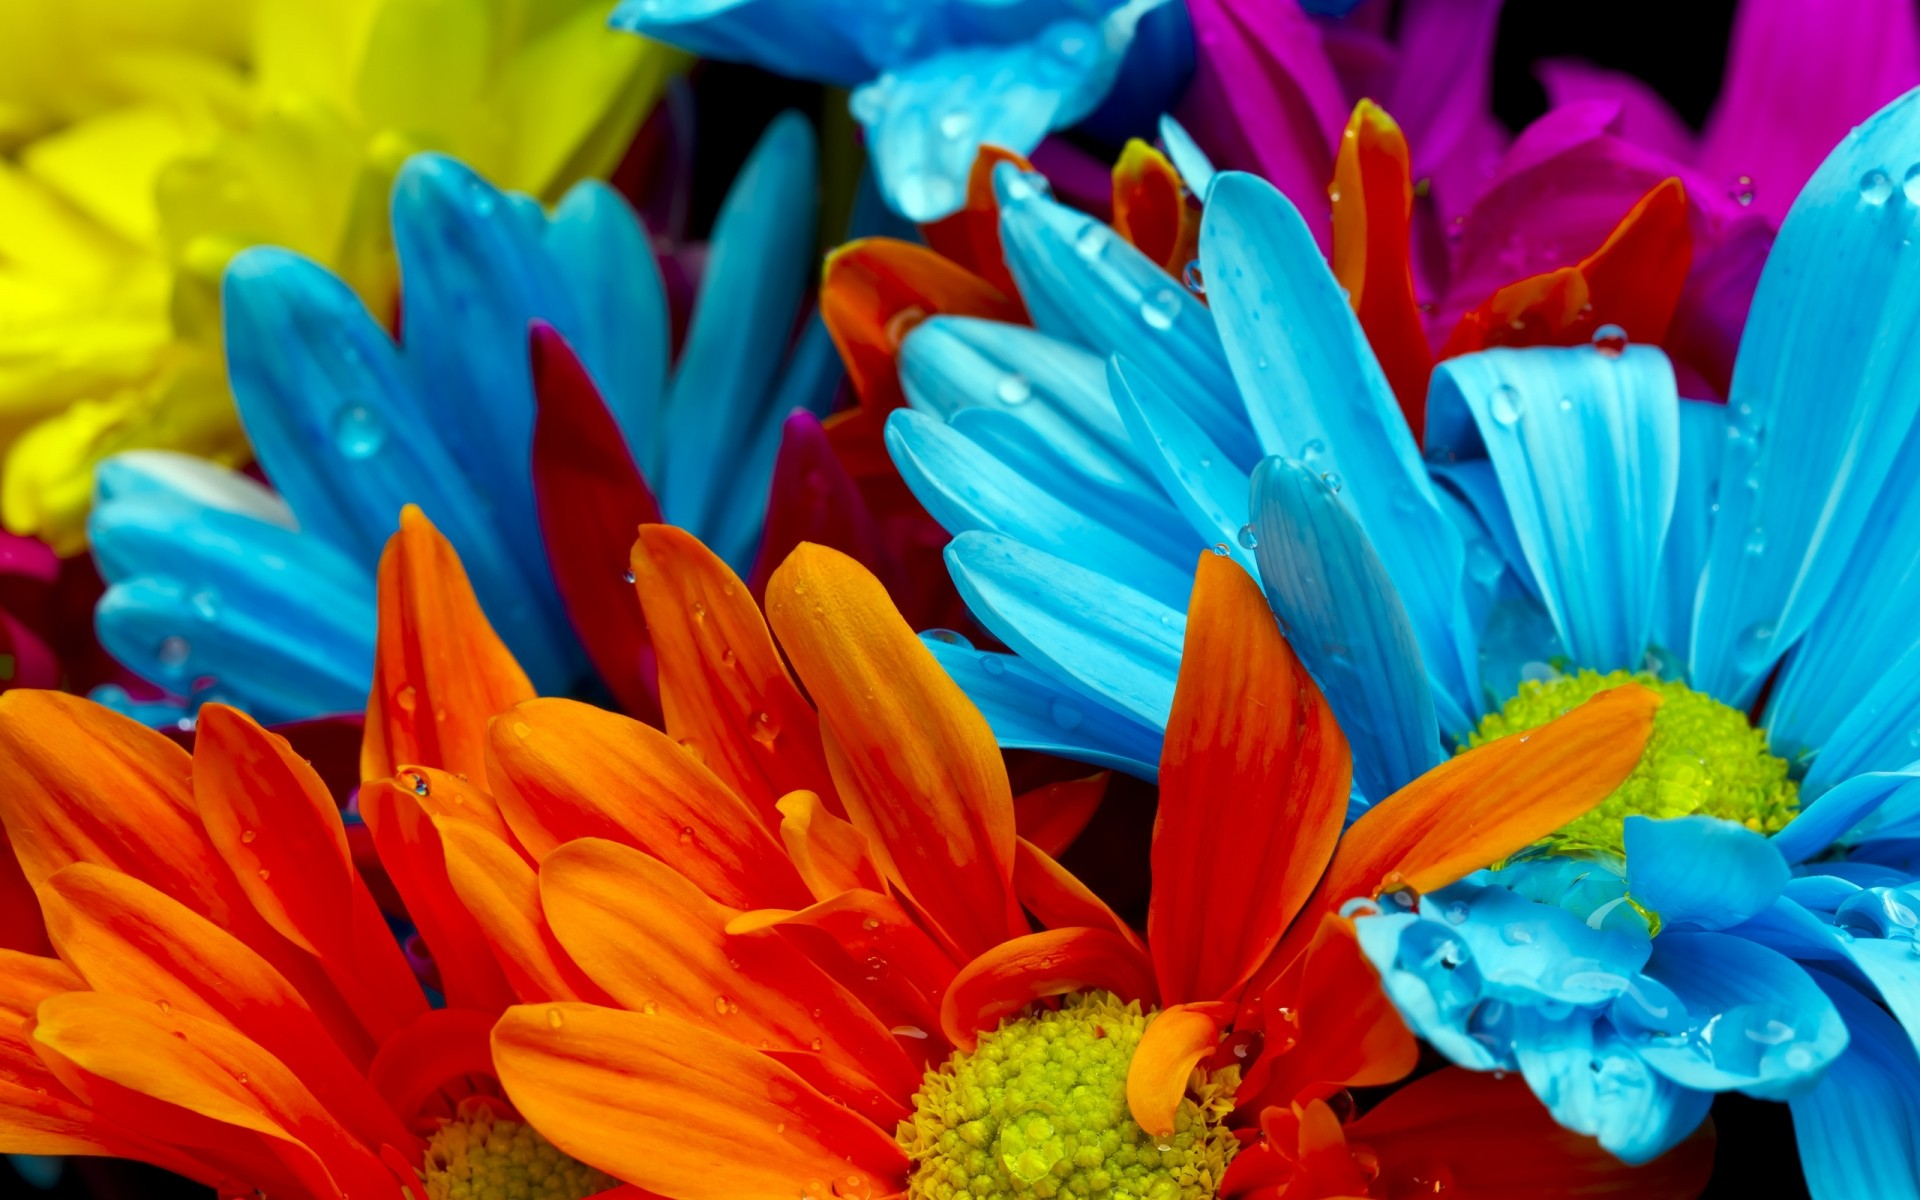 flowers nature flower bright color flora summer garden leaf petal beautiful blooming gerbera